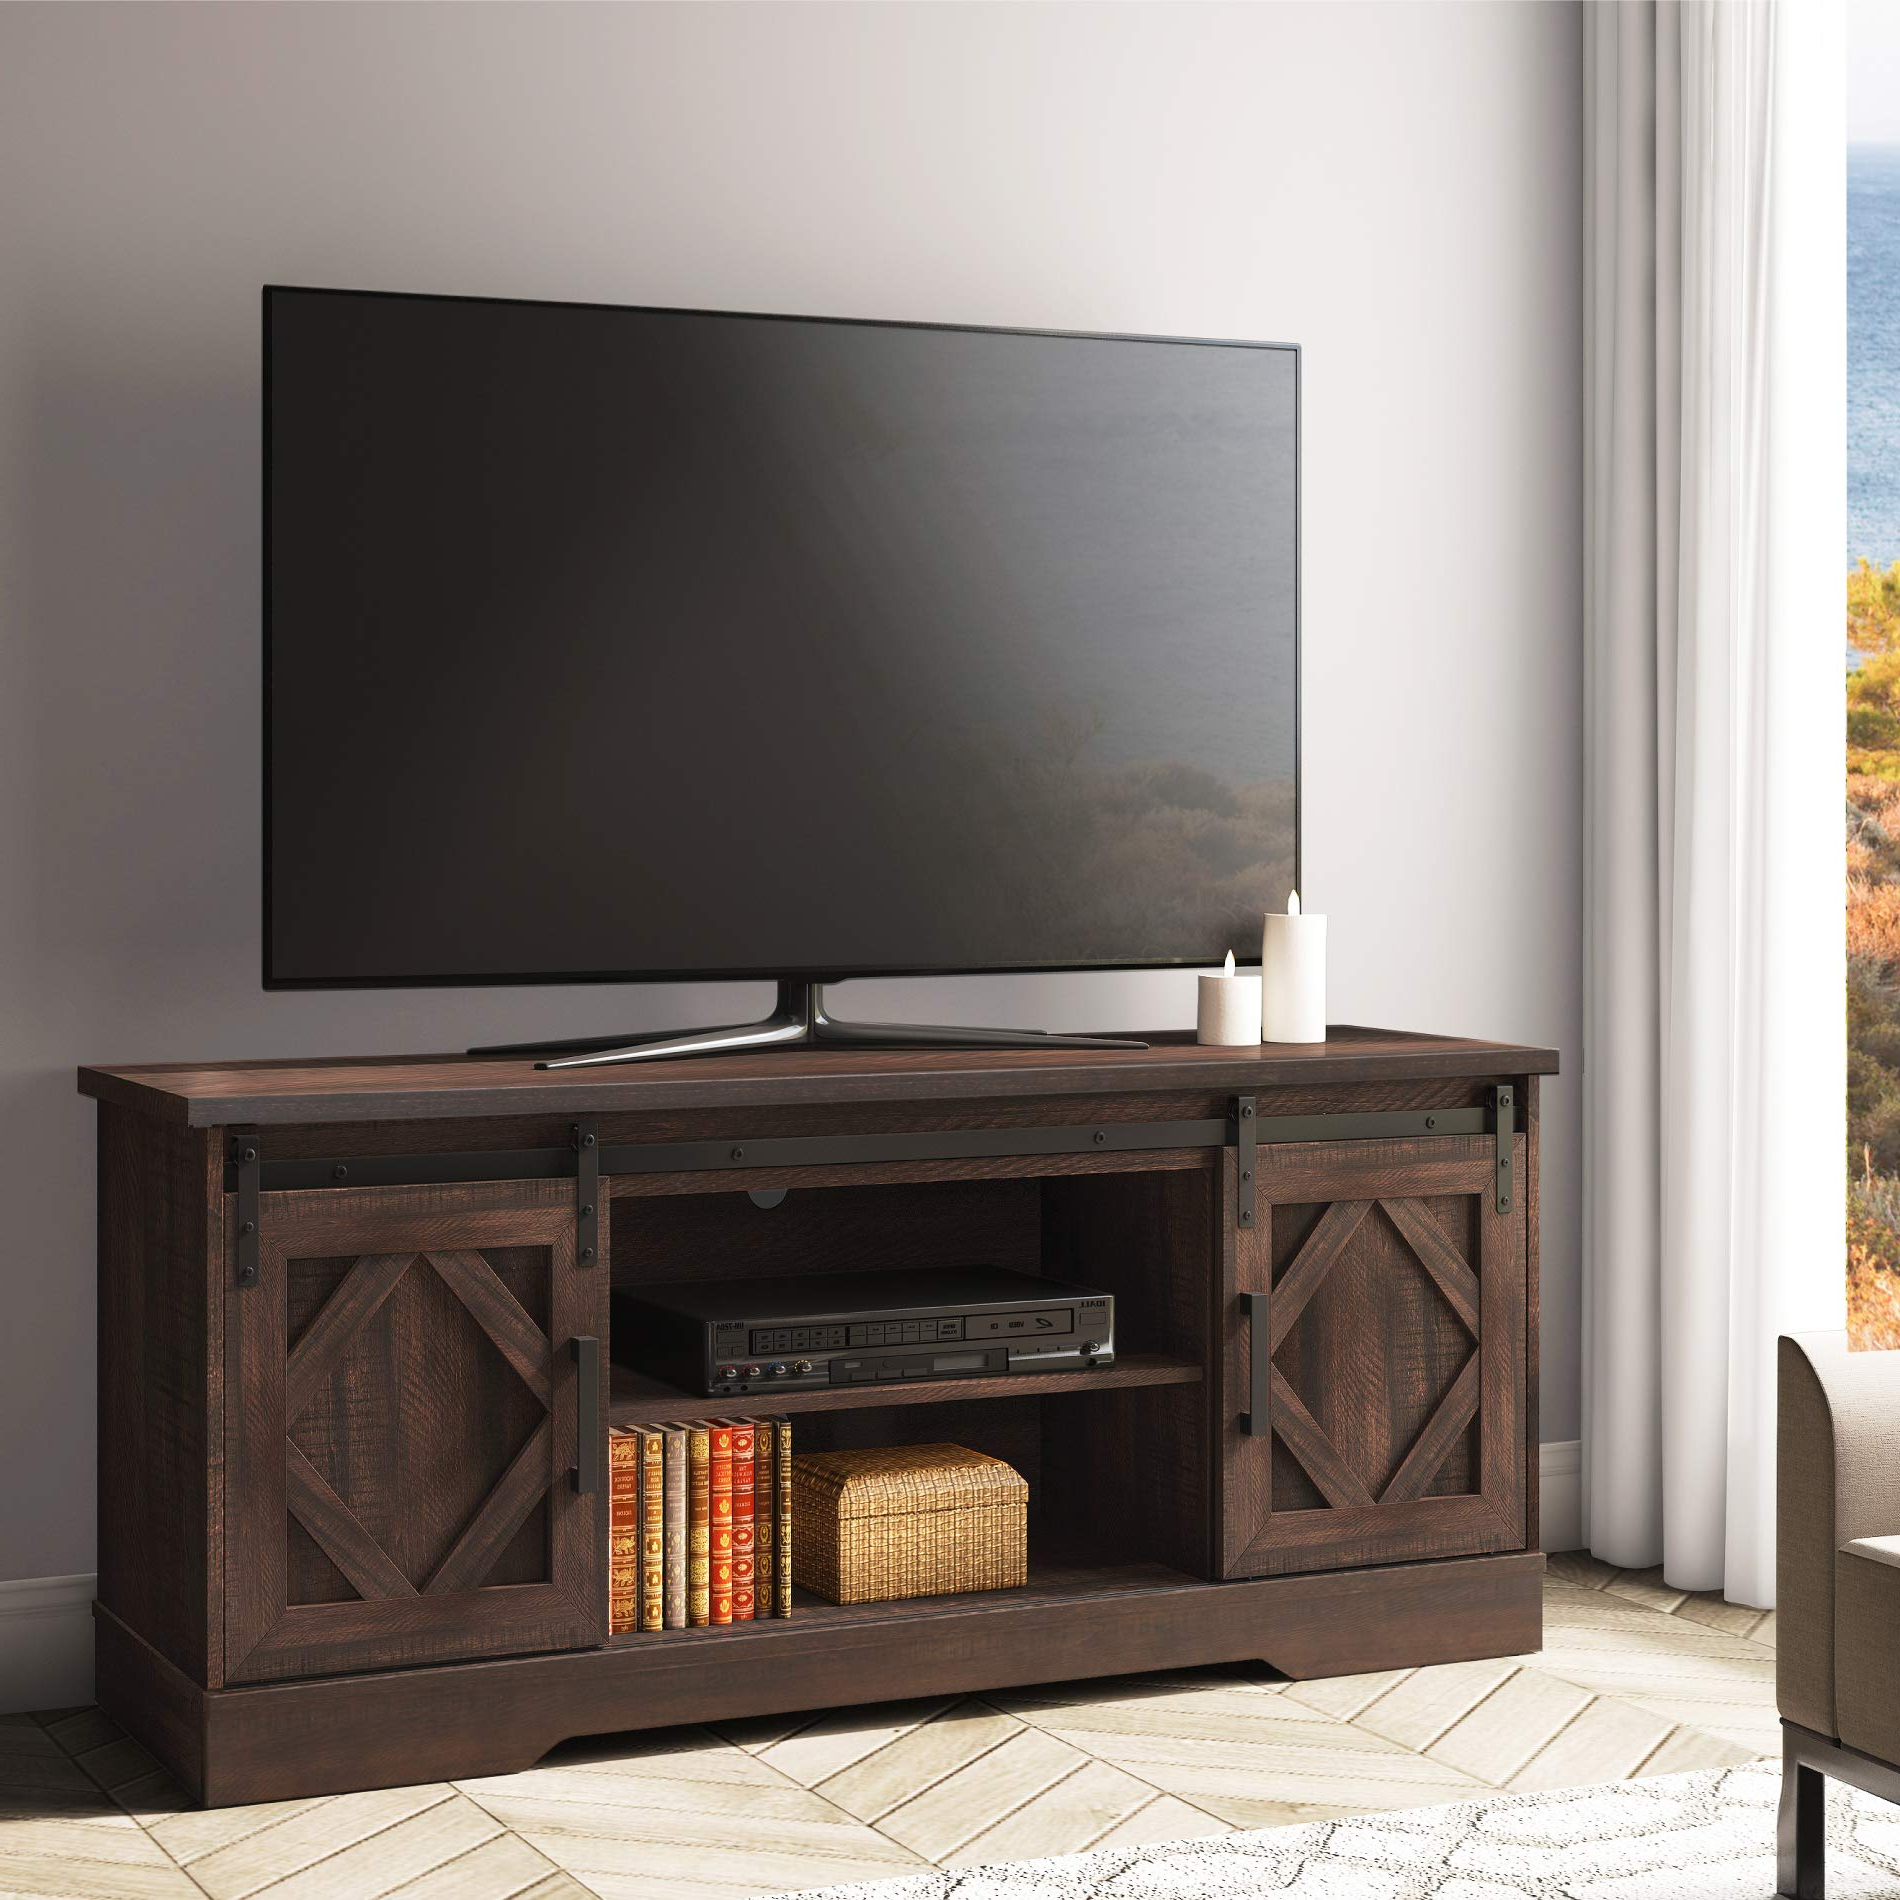 """Best And Newest Buckley Tv Stands For Tvs Up To 65"""" Throughout Fitueyes Sliding Barn Door Tv Stand For 65"""" Flat Screen (View 16 of 20)"""